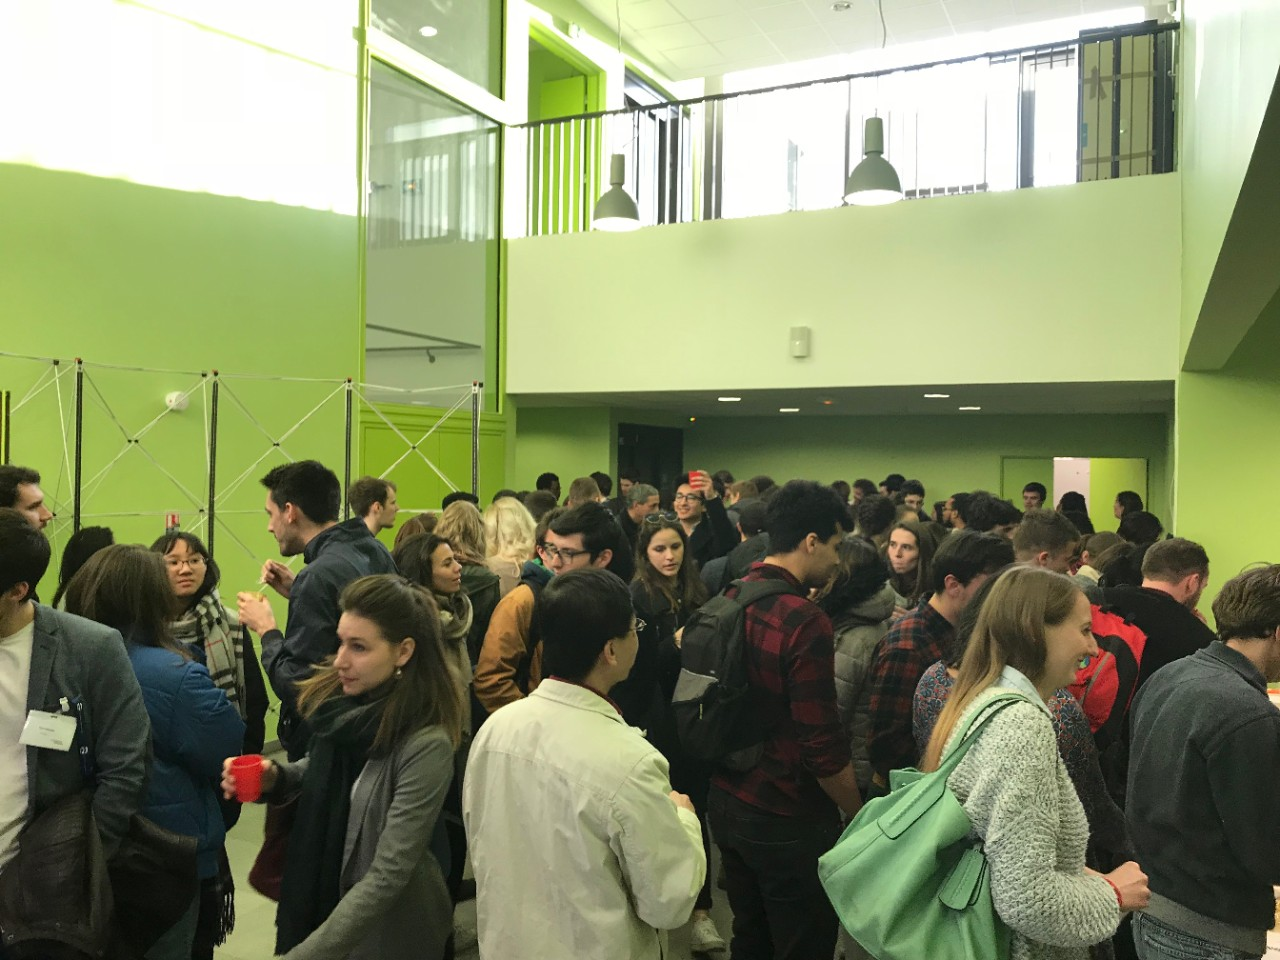 UB and UC students socializing after UC students presented work in Bordeaux